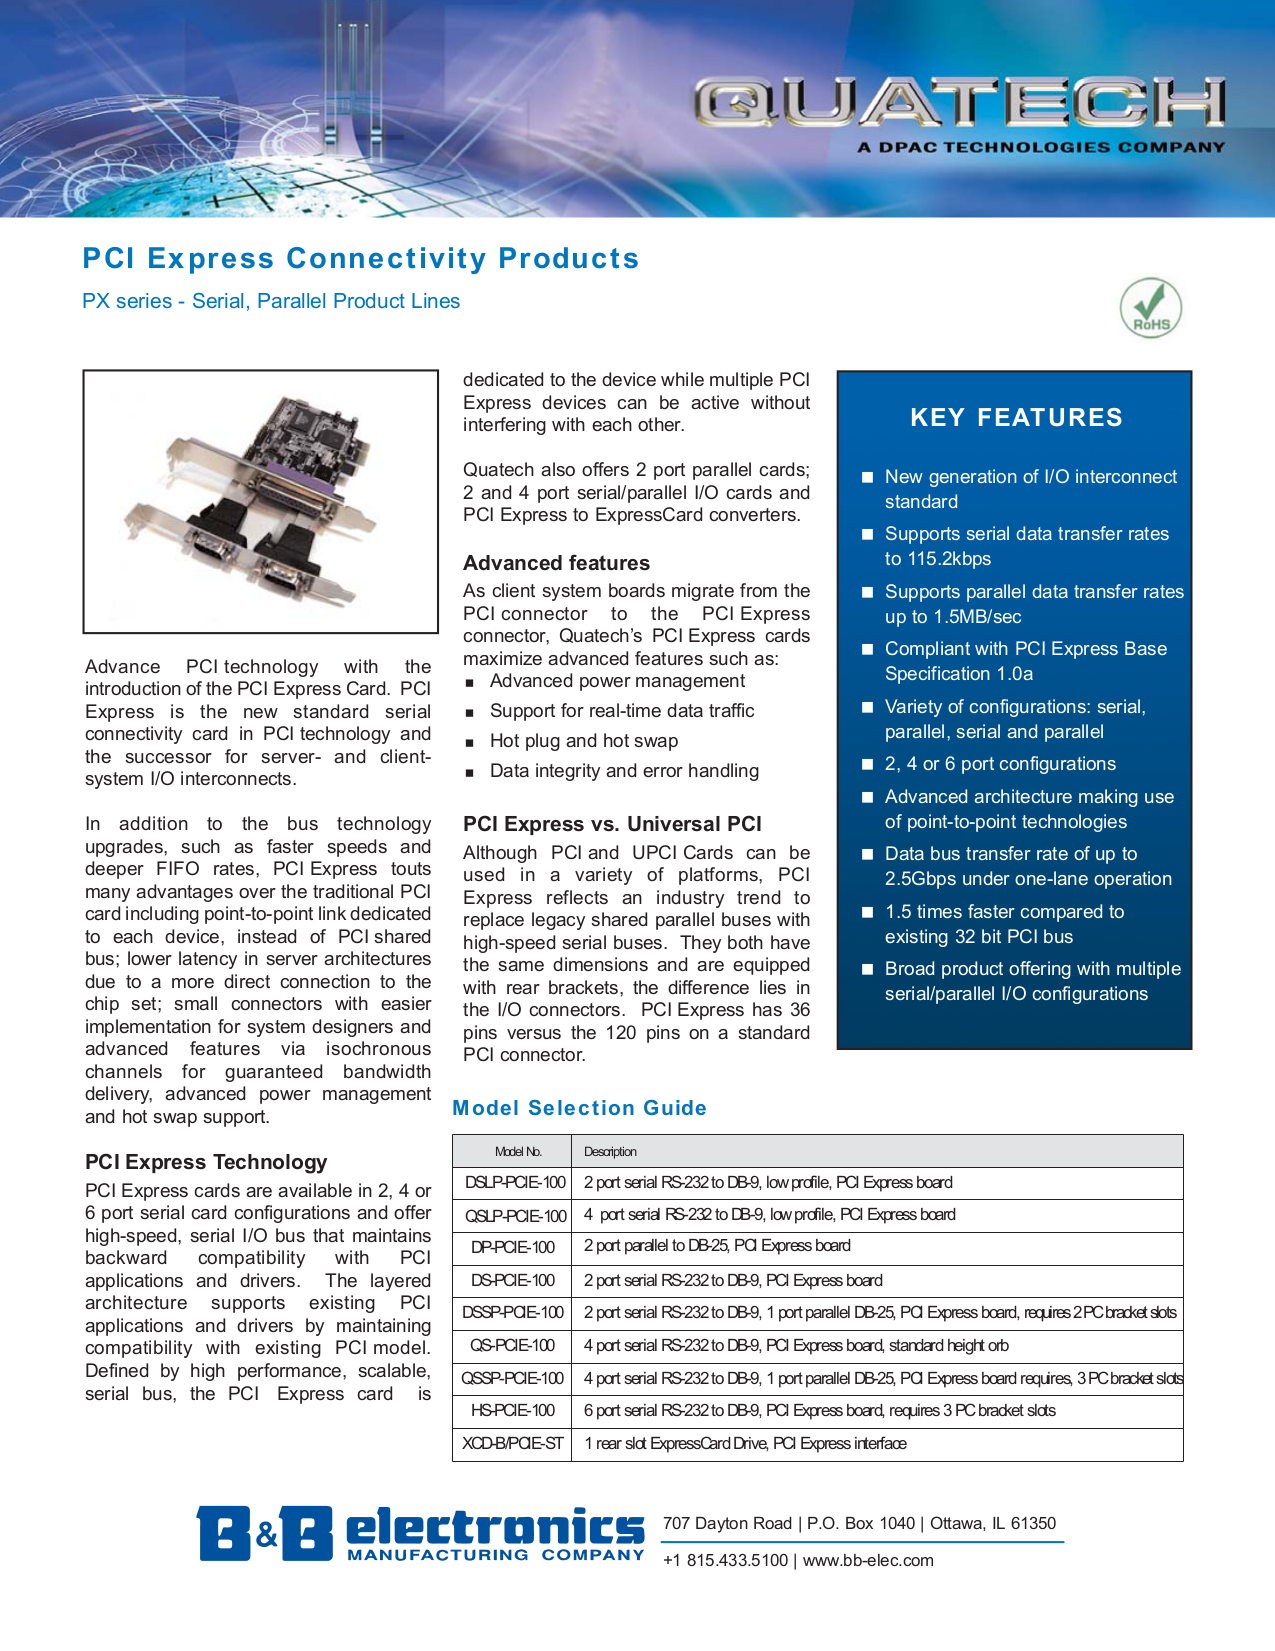 pdf for Quatech Other QS-PCIE-100 PCI Express Devices manual